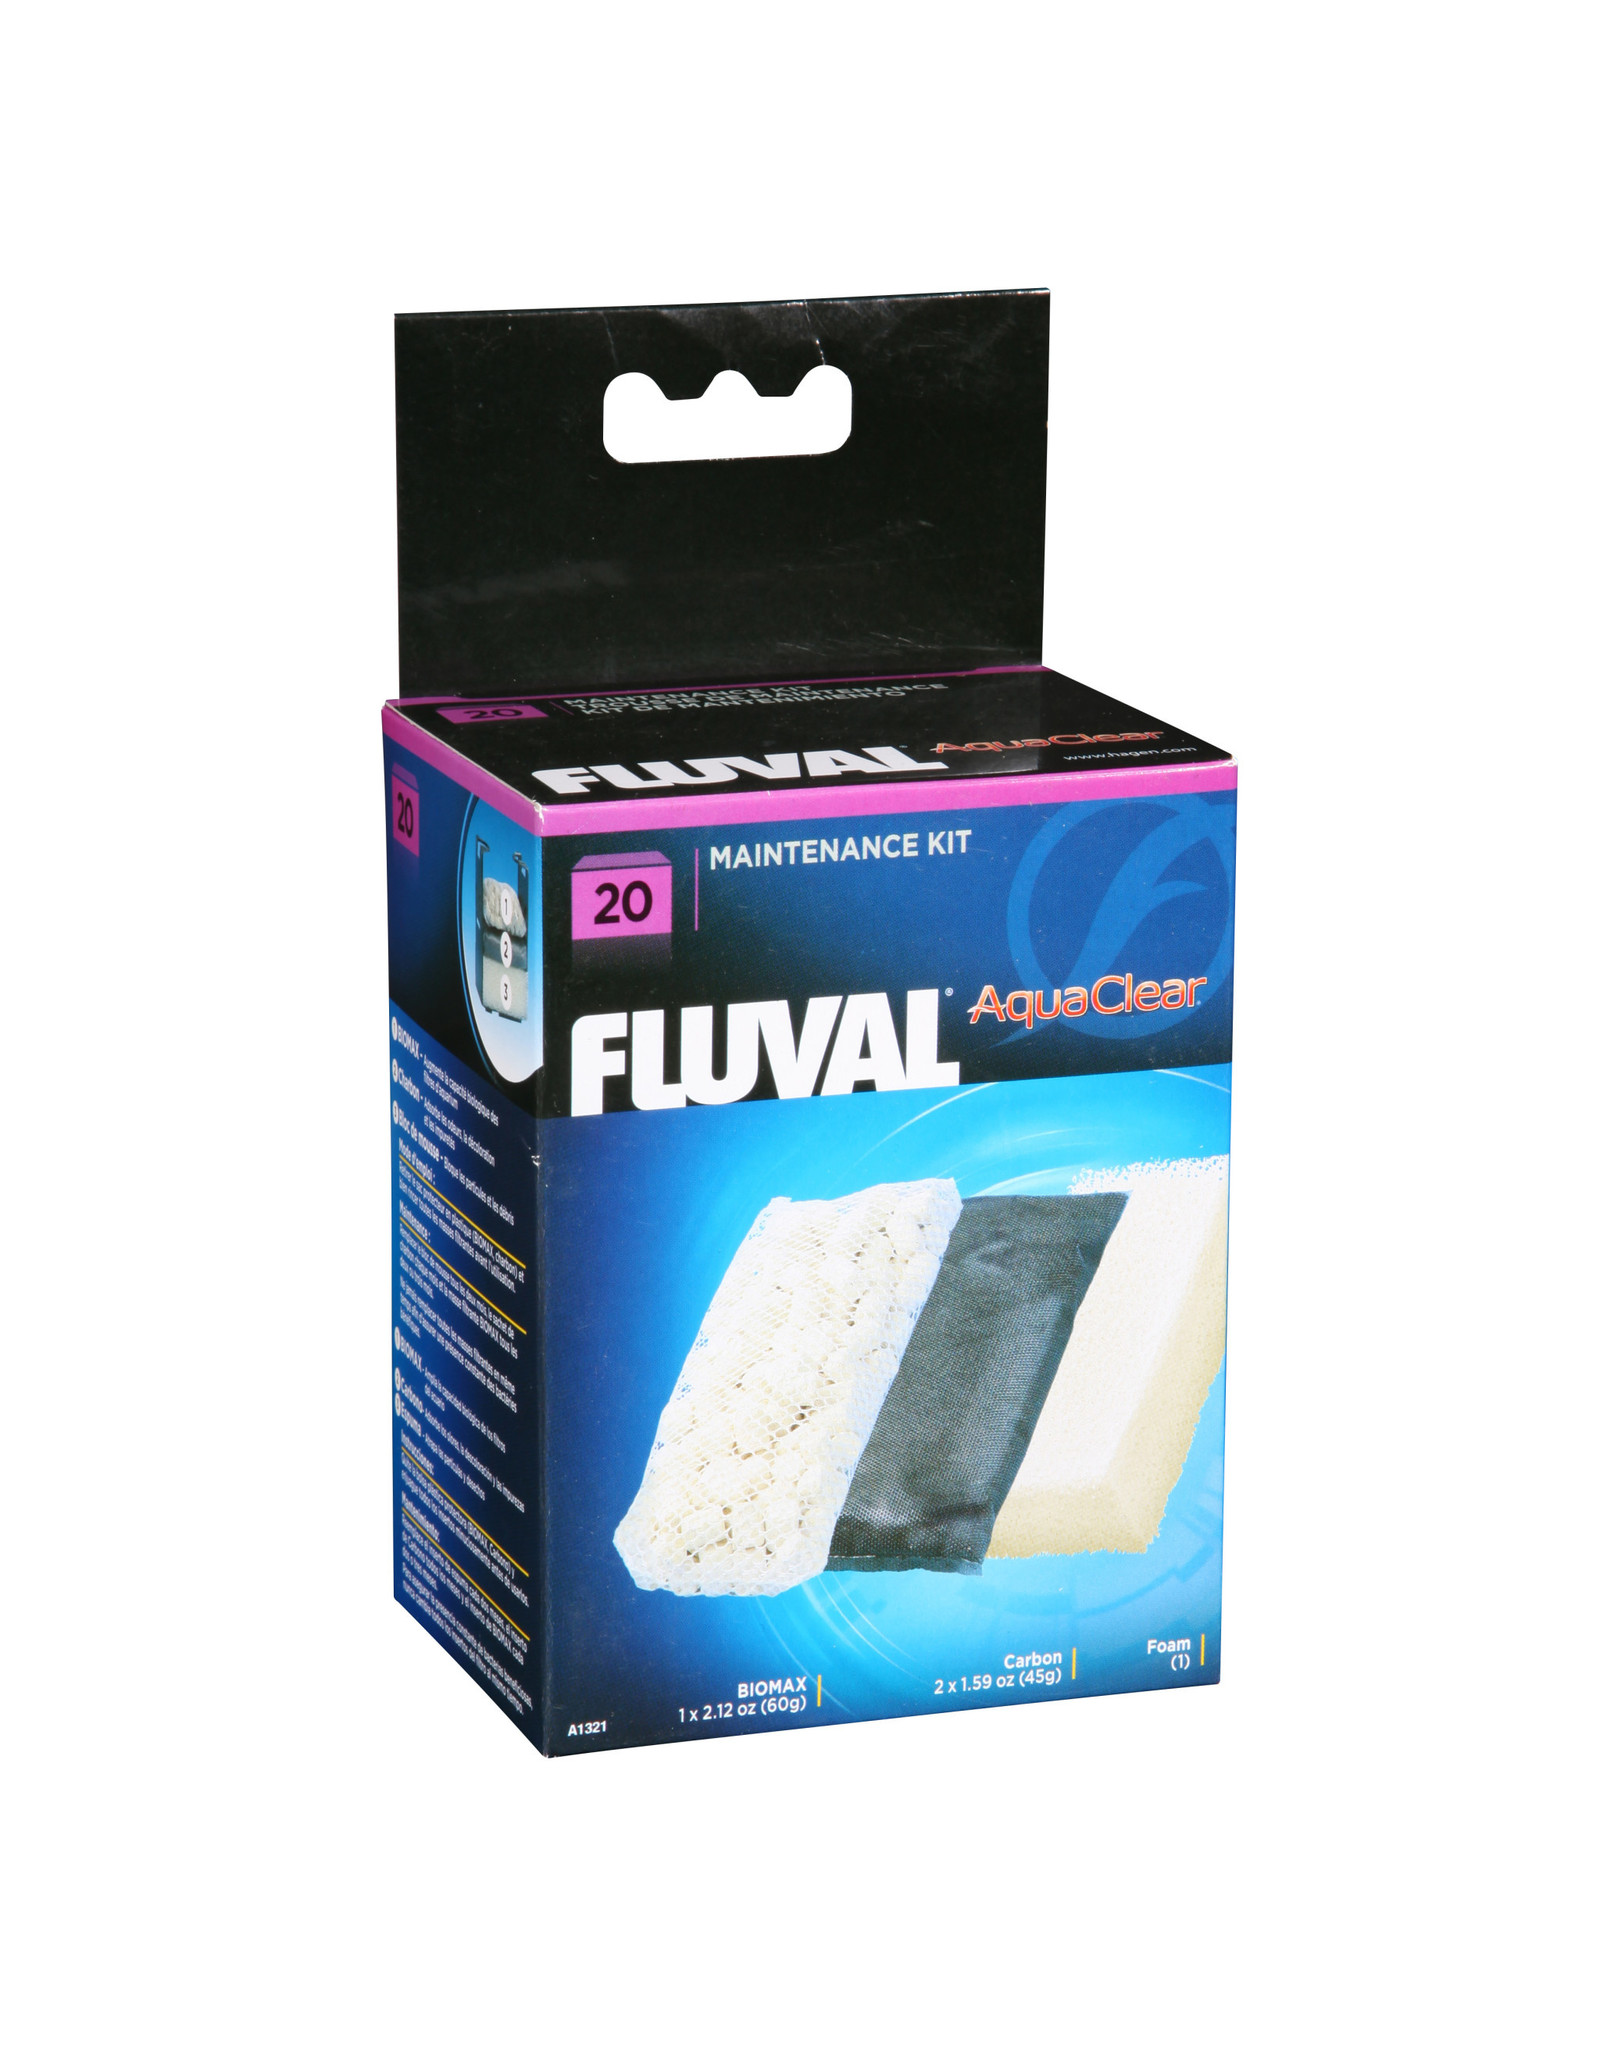 Fluval Fuval /Aquaclear 20 Filter Media Maintenance Kit